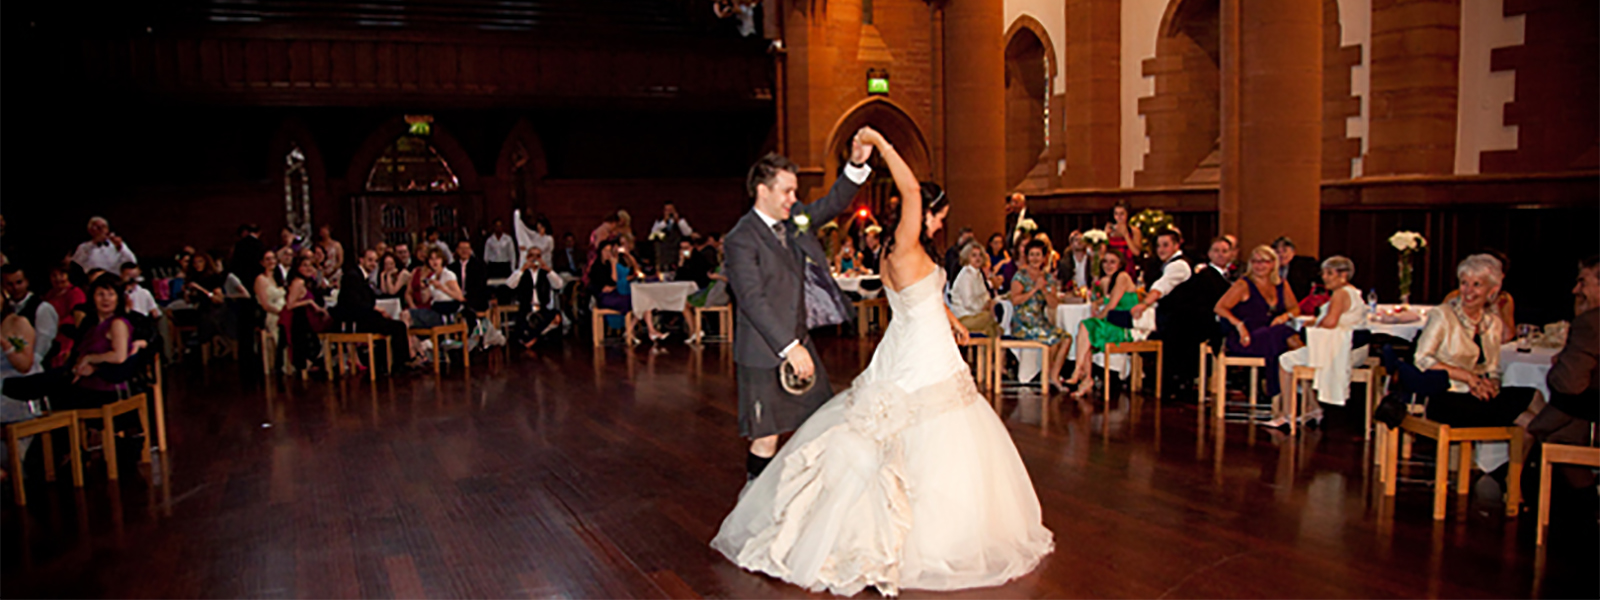 Wedding reception at Barony Hall. Photo courtesy of Team Thomson Photography